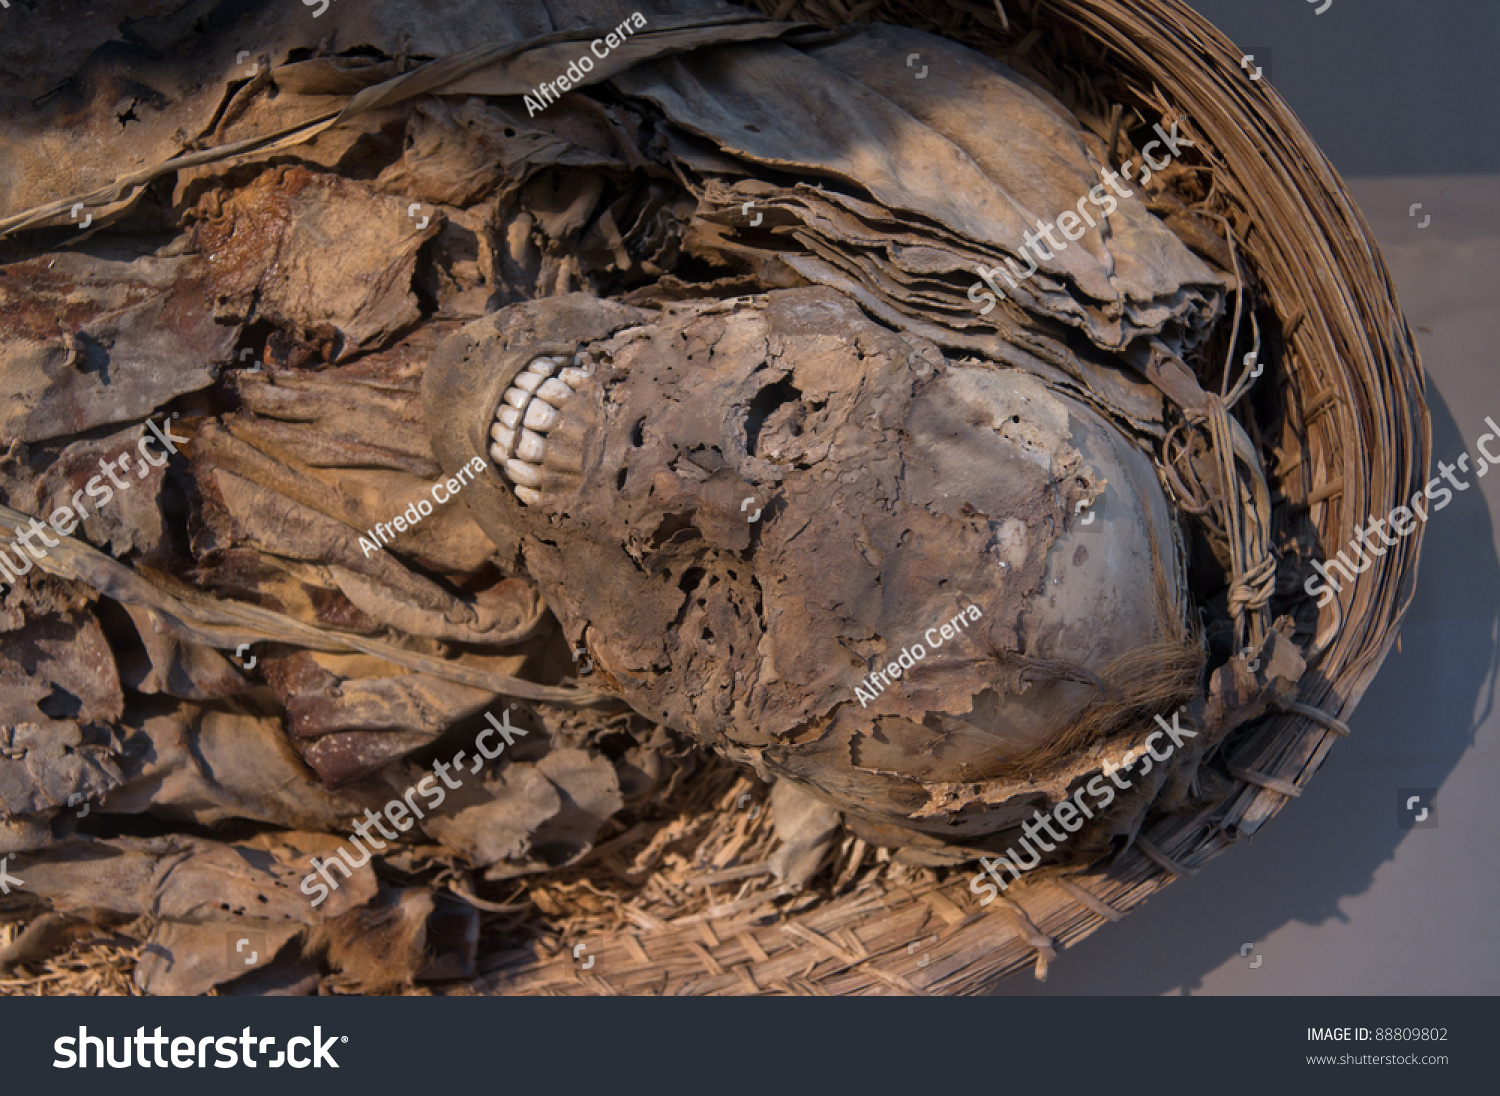 egyptian mummy stock photo 88809802 shutterstock